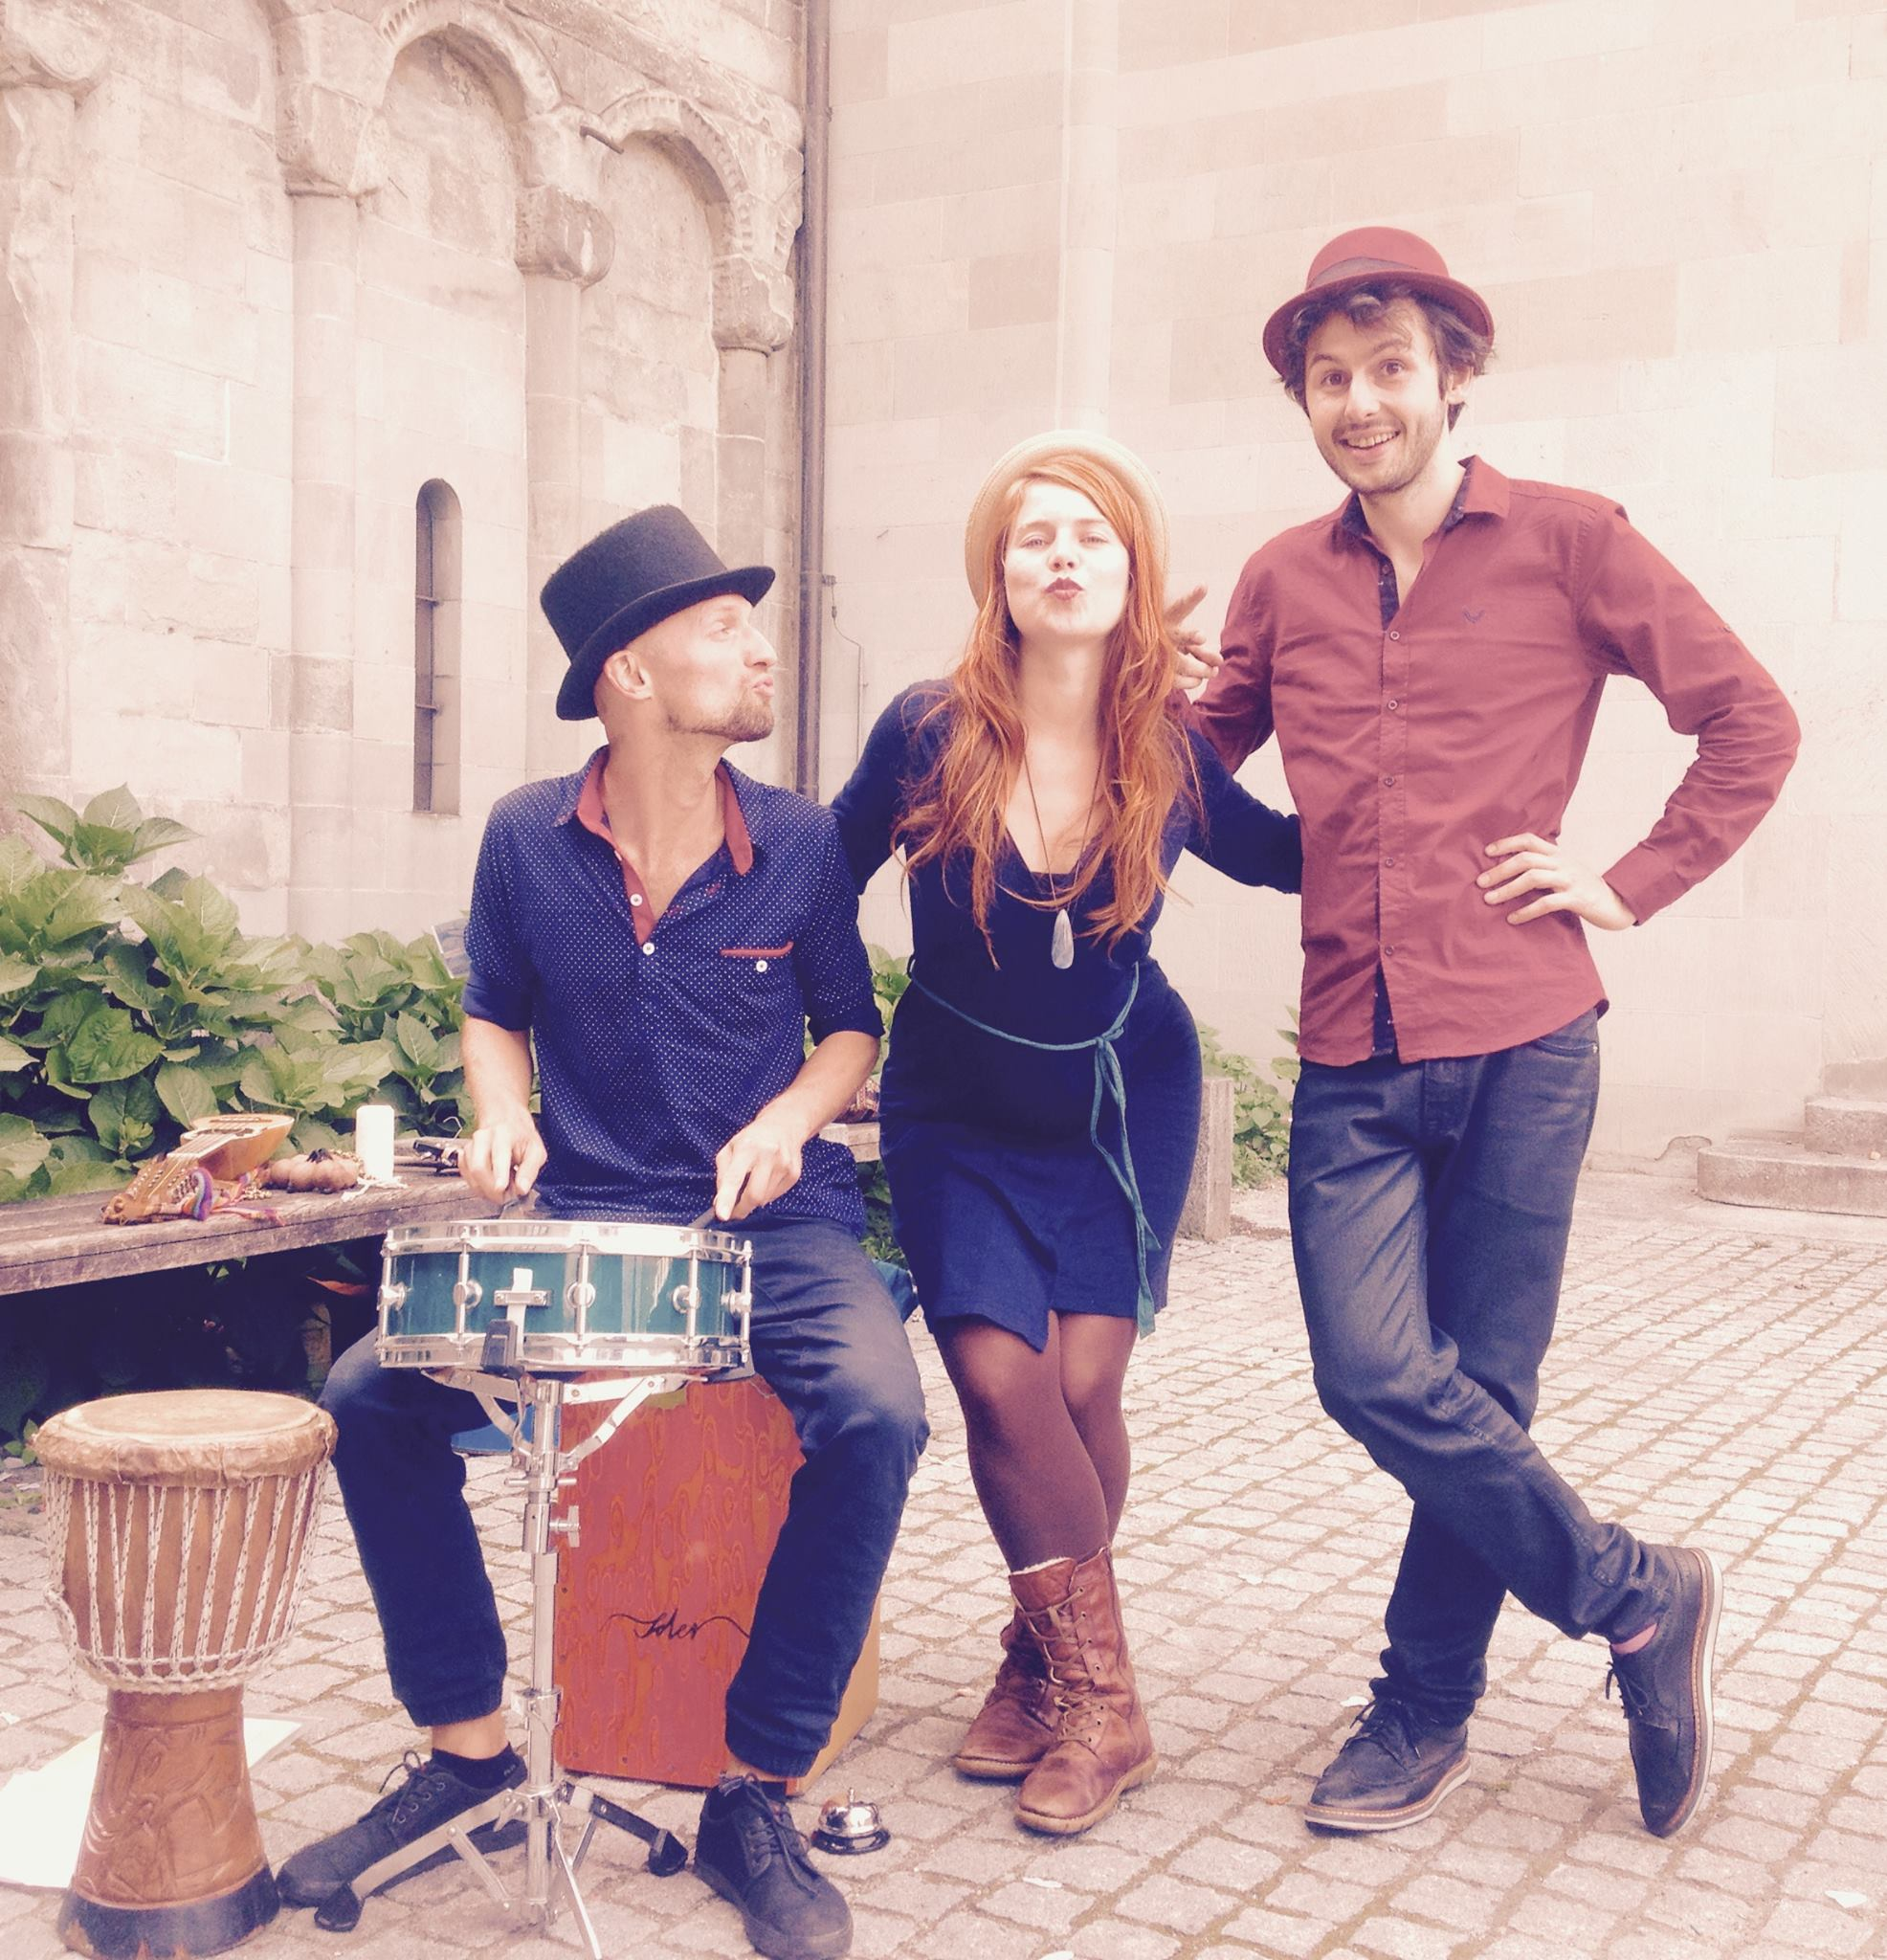 Bear in mind... Vera Anja & Artemi - multi-instrumental singer/songwriter folk